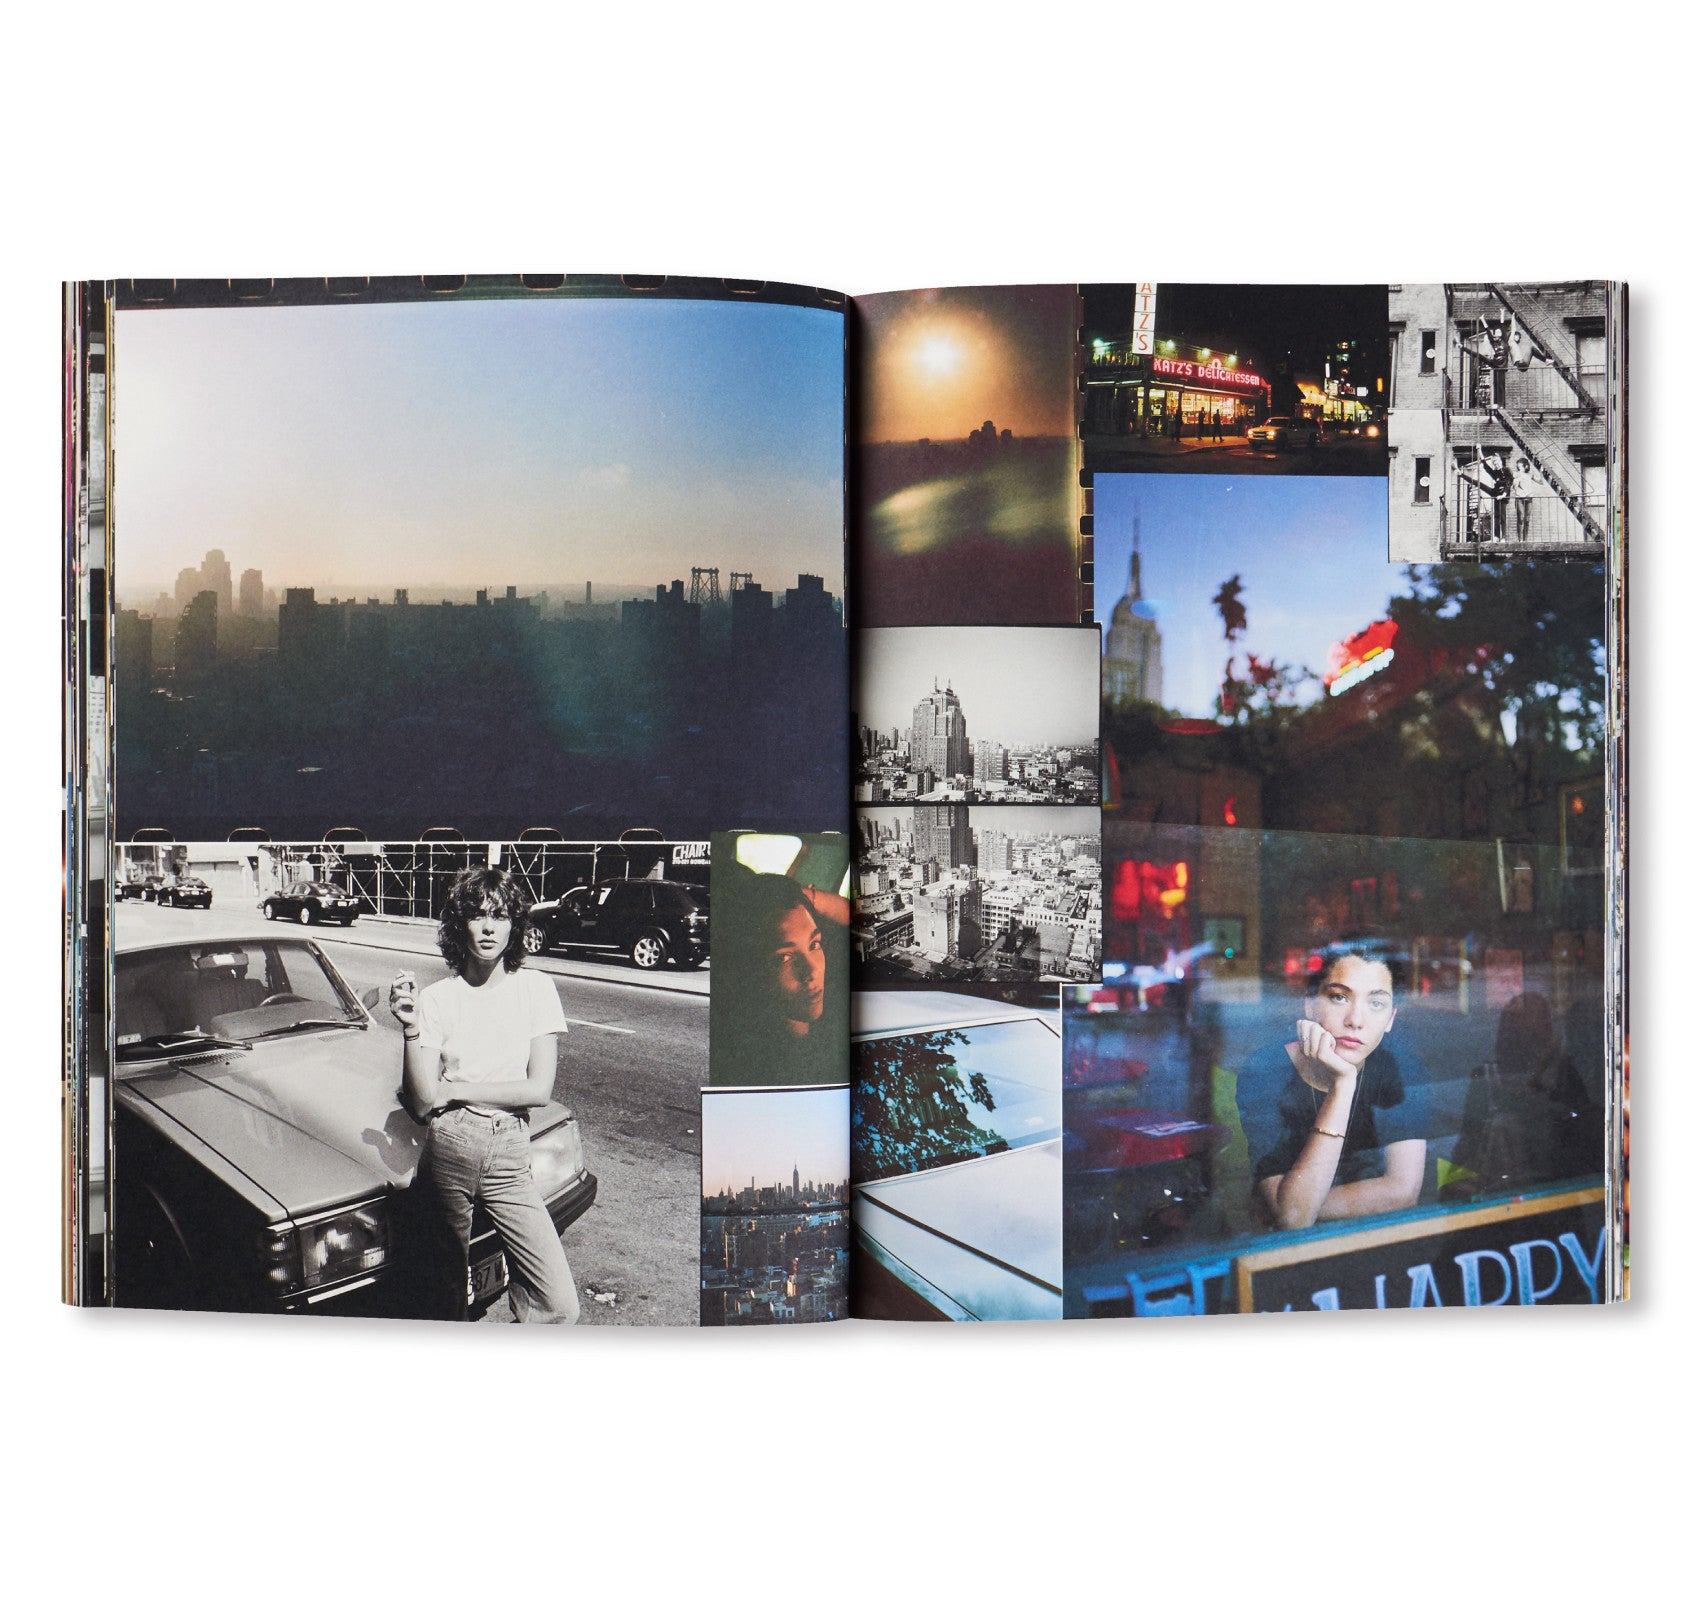 THE OTHER DAY by Quentin de Briey [SPECIAL EDITION]